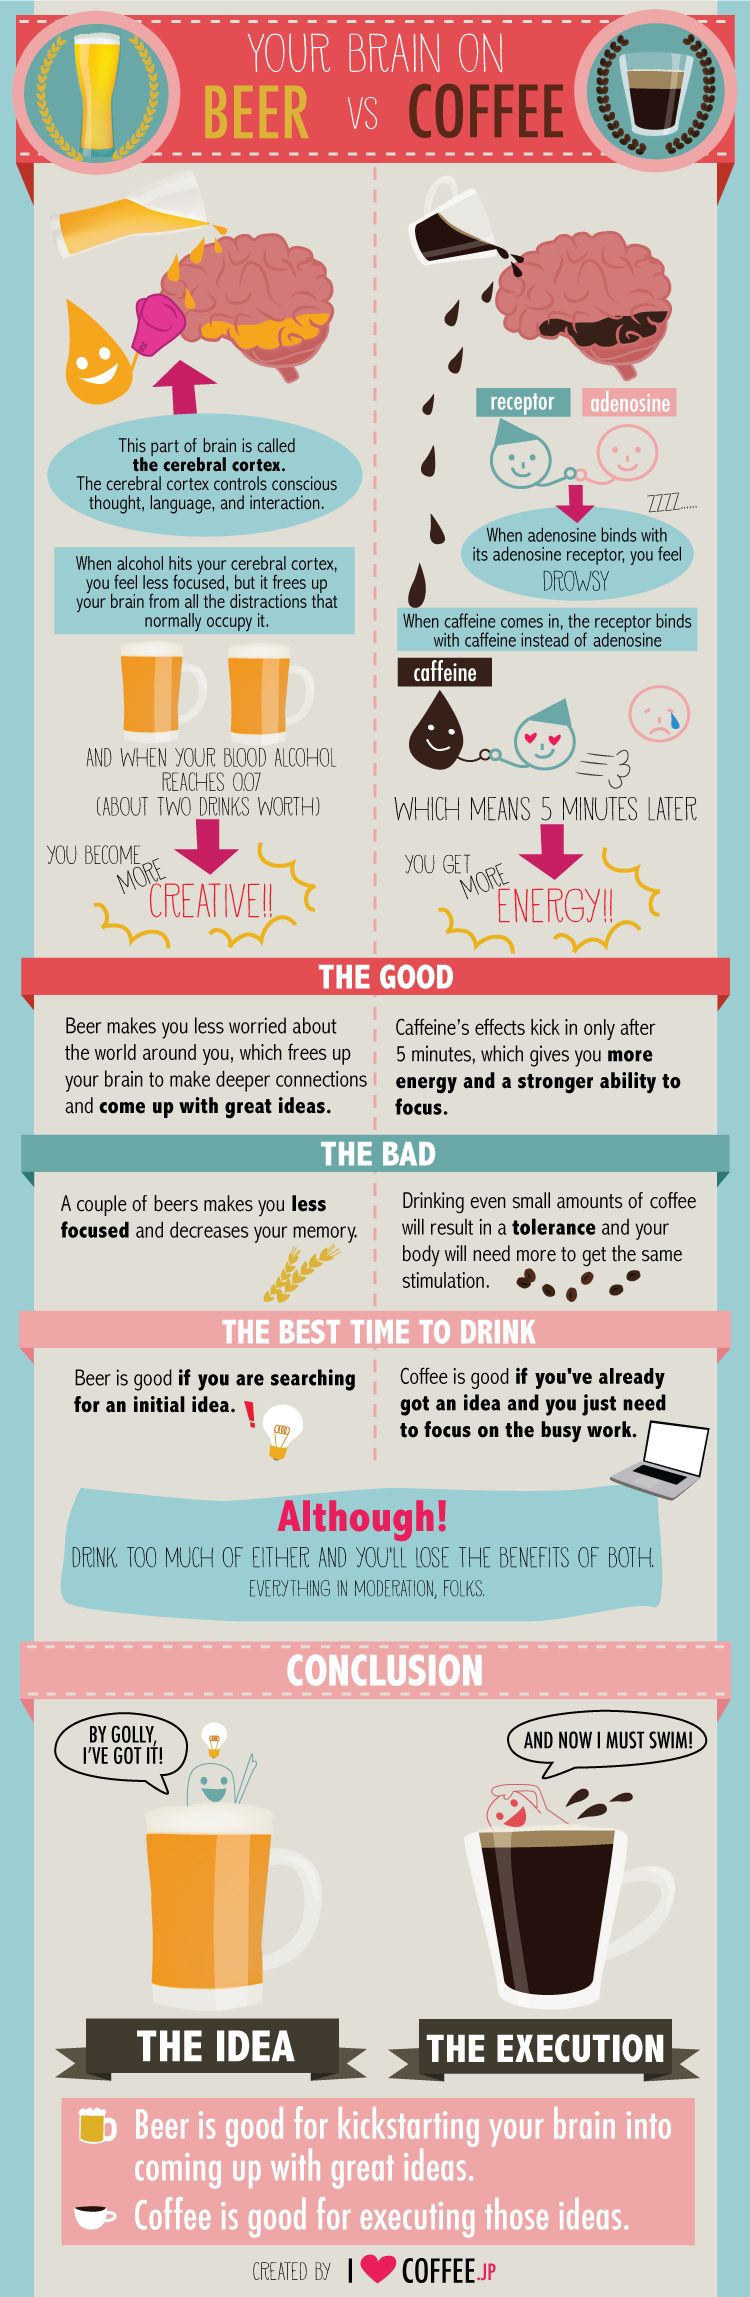 infographic-beer-coffee